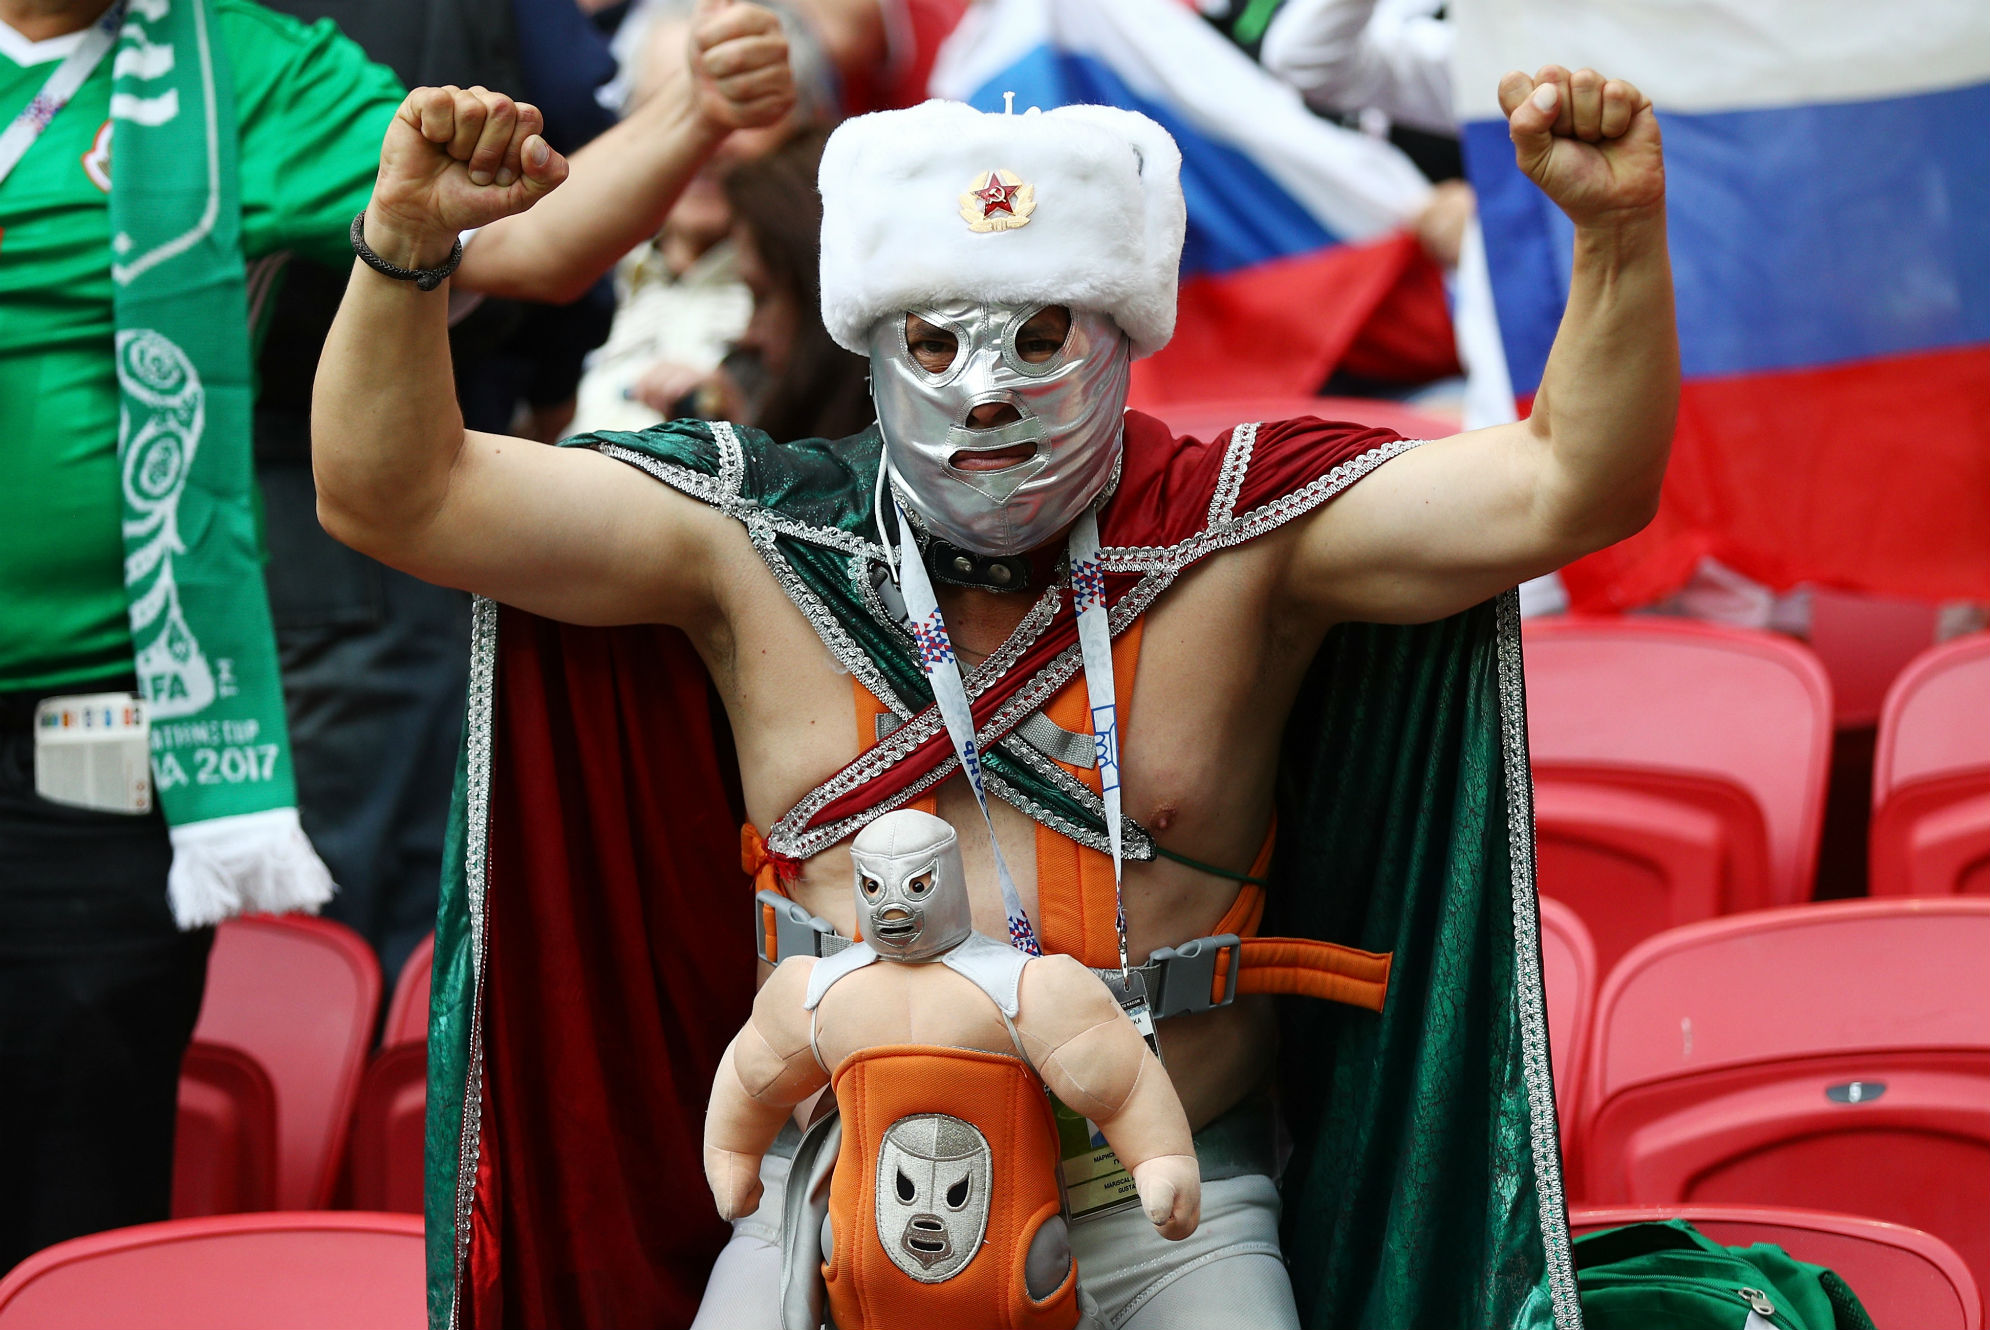 Mexico Russia fans